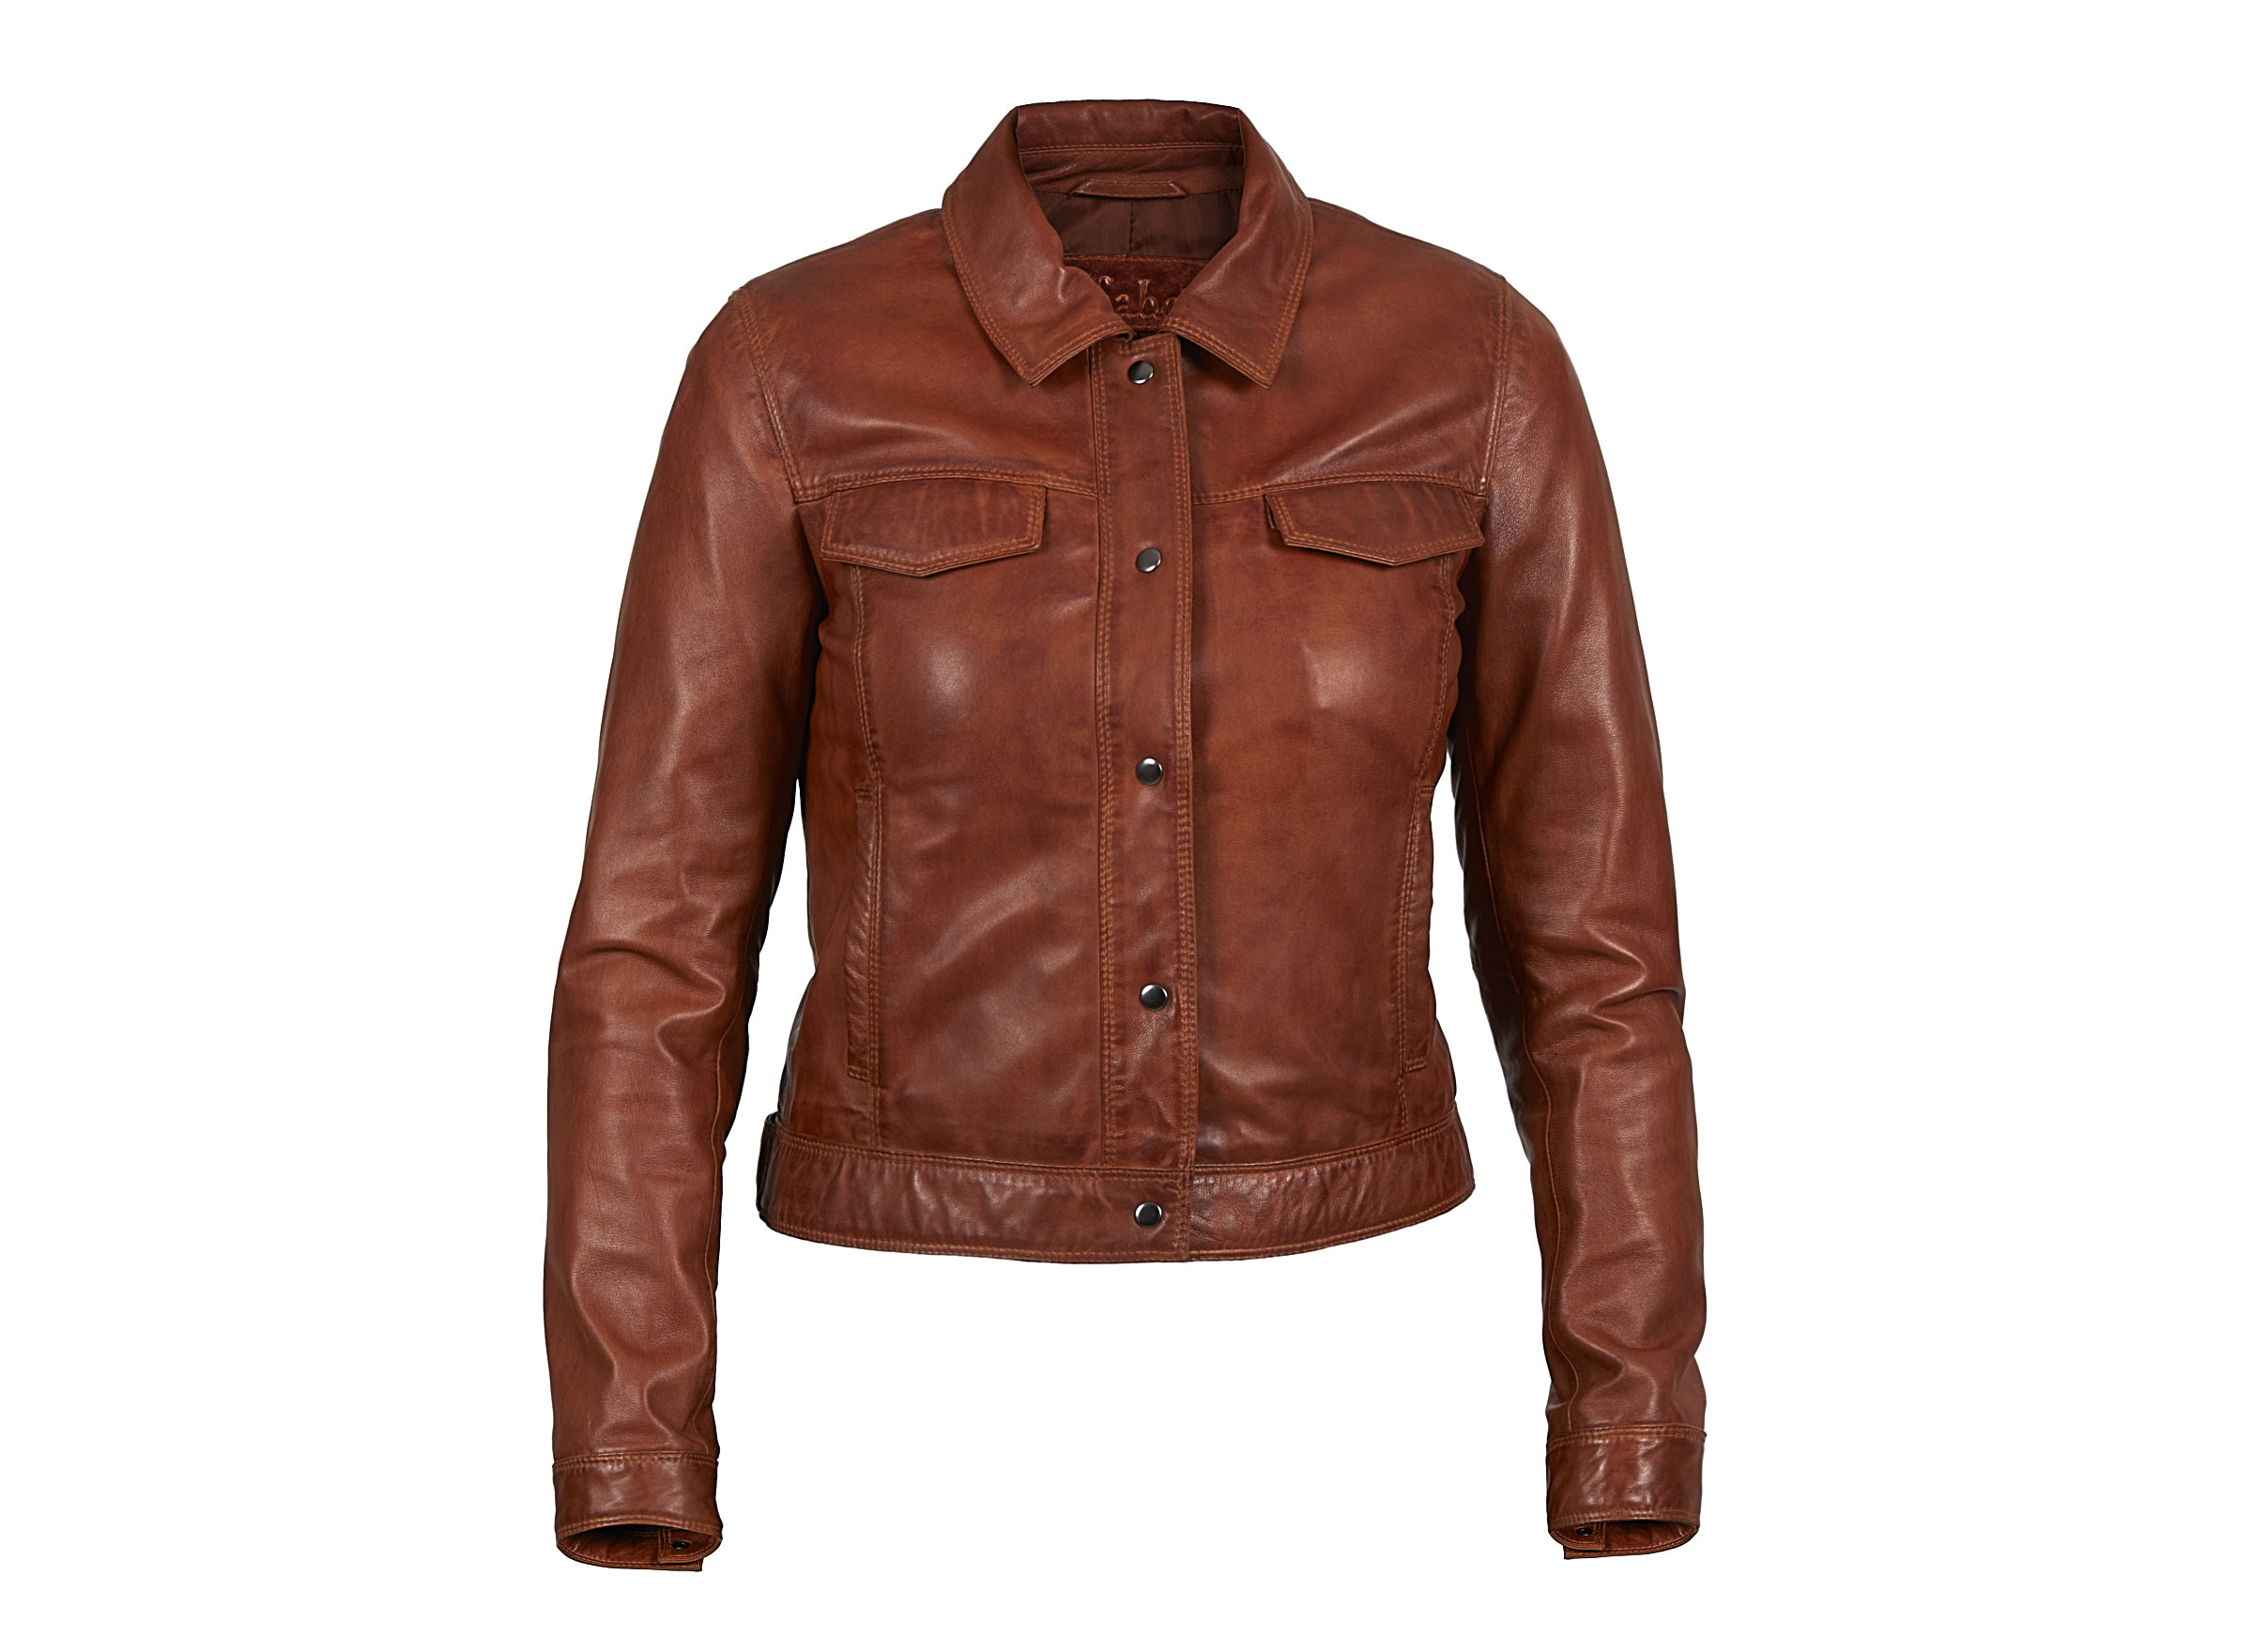 Chabo Bags - Leather Jacket Coco - Camel 40